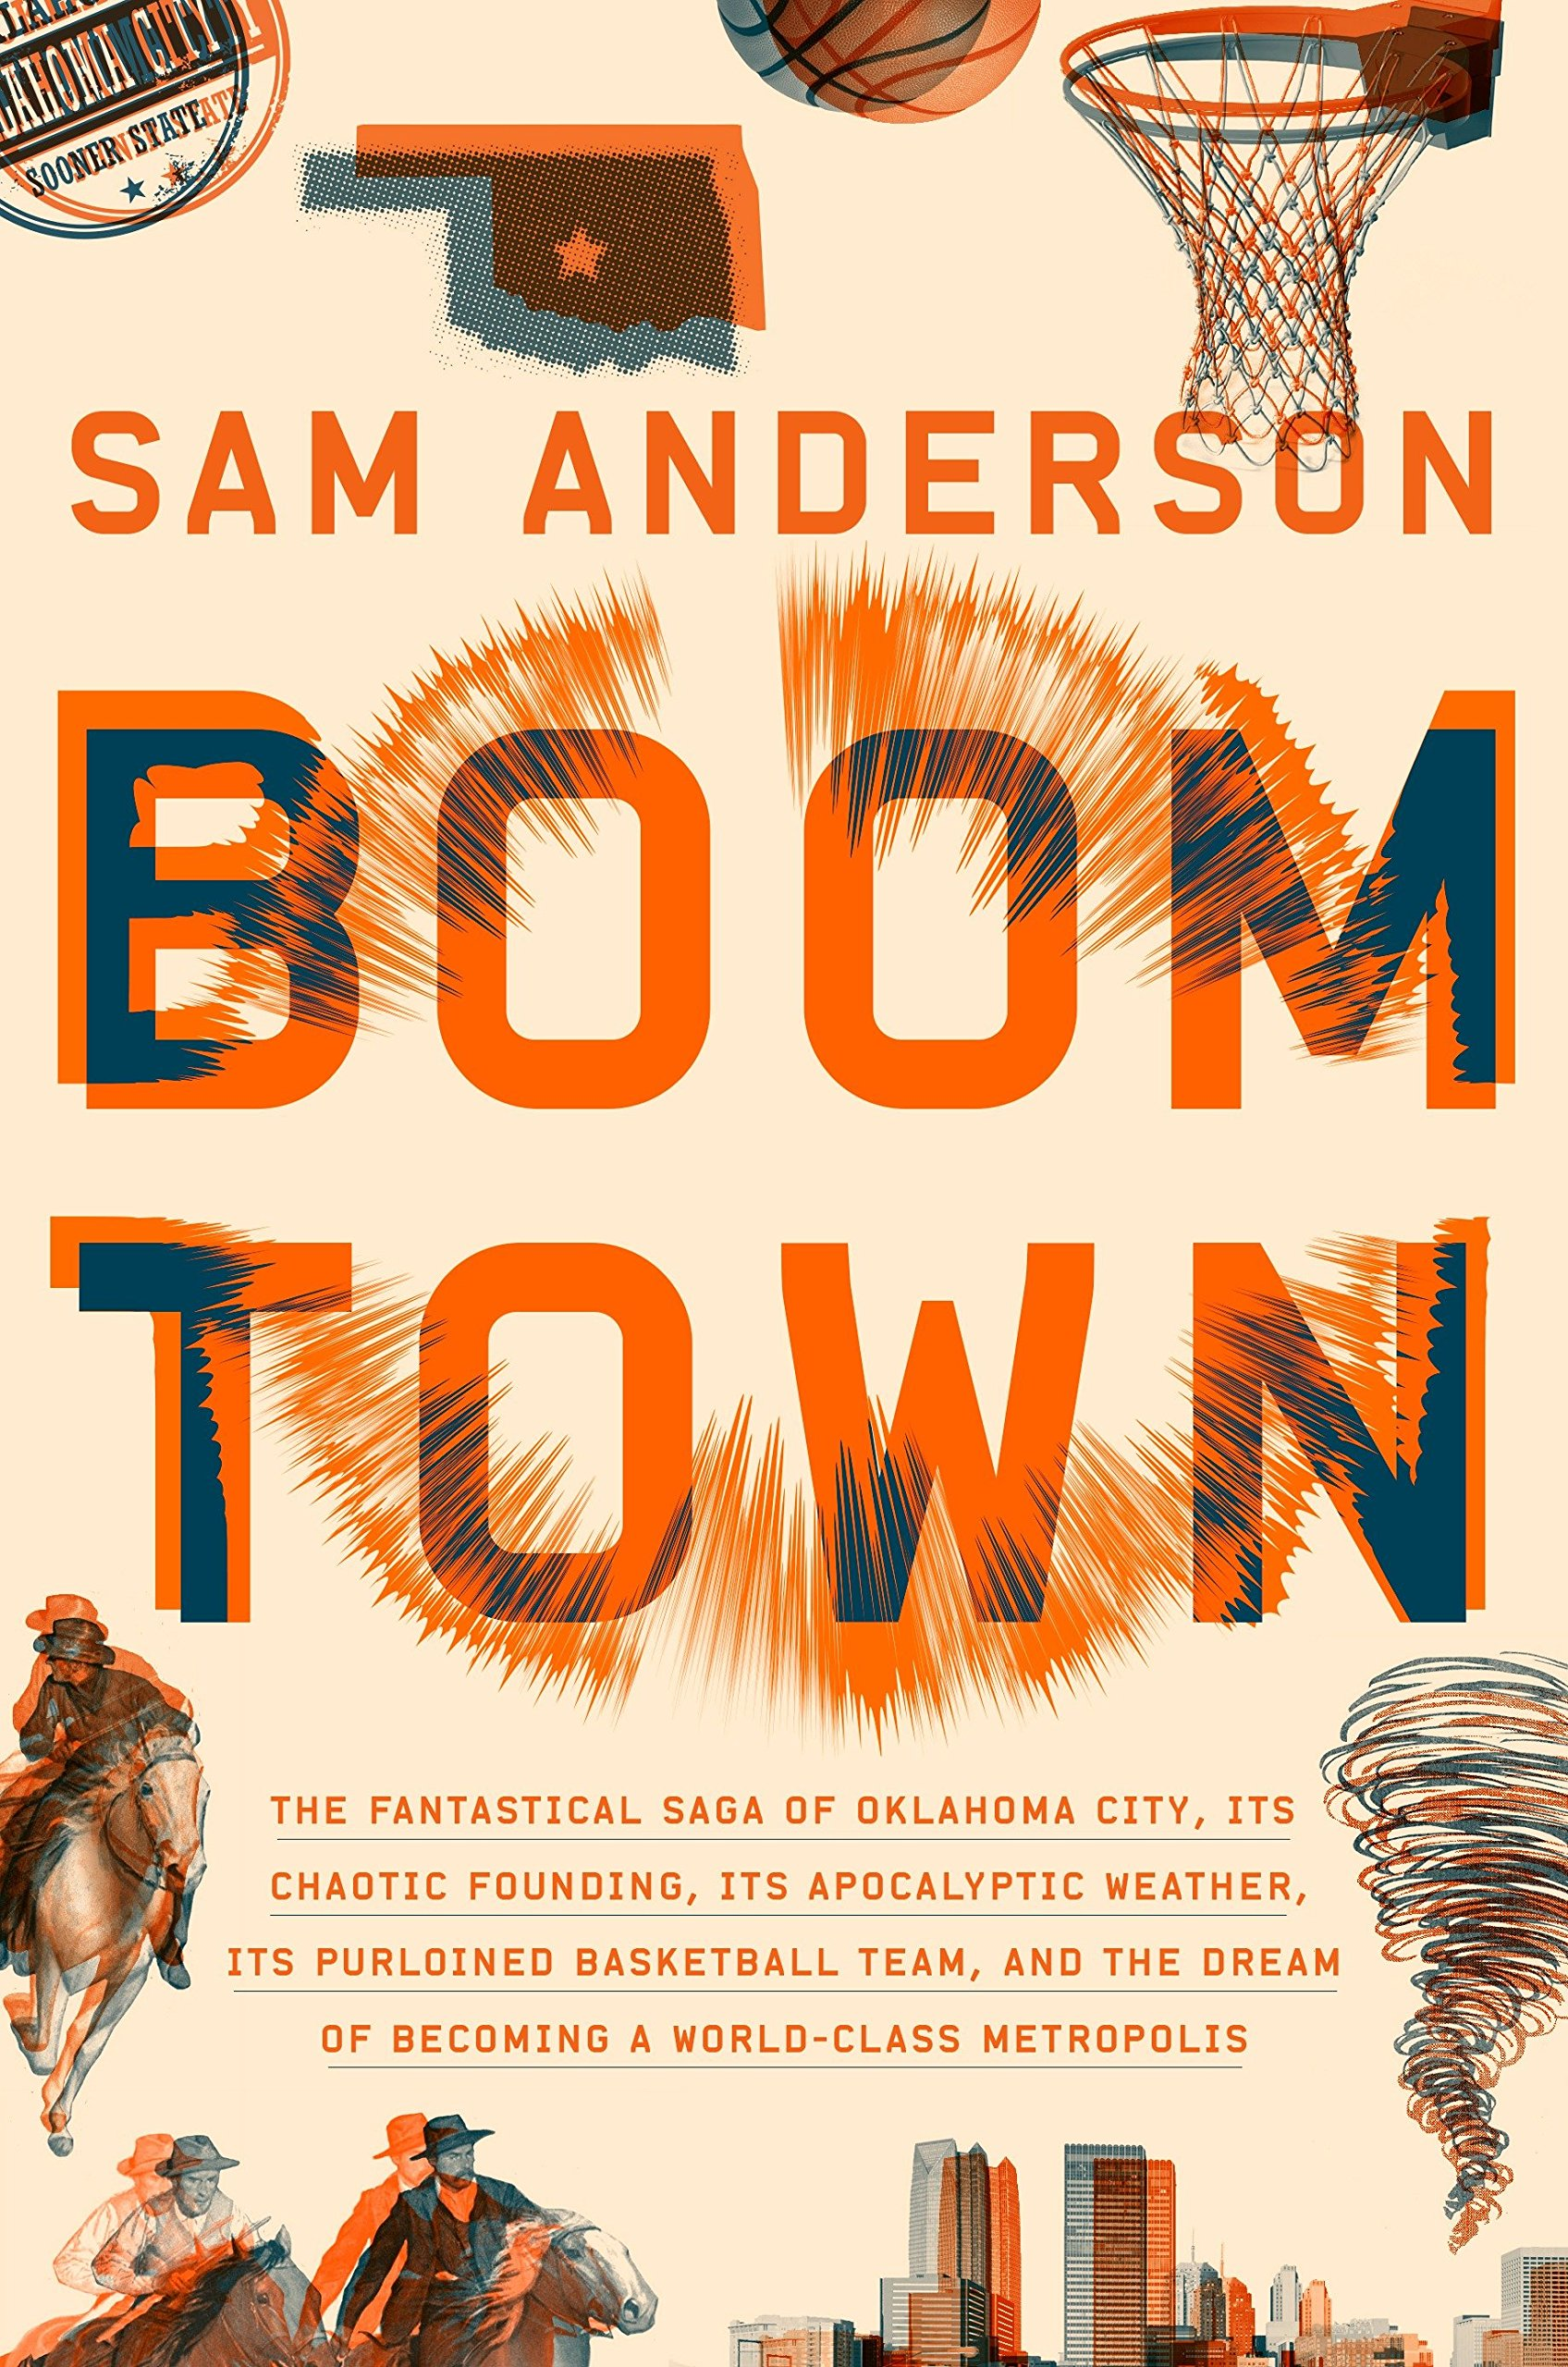 Boom Town: The Fantastical Saga Of Oklahoma City, Its Chaotic Founding...  Its Purloined Basketball Team, And The Dream Of Becoming A World Class  Metropolis: ...